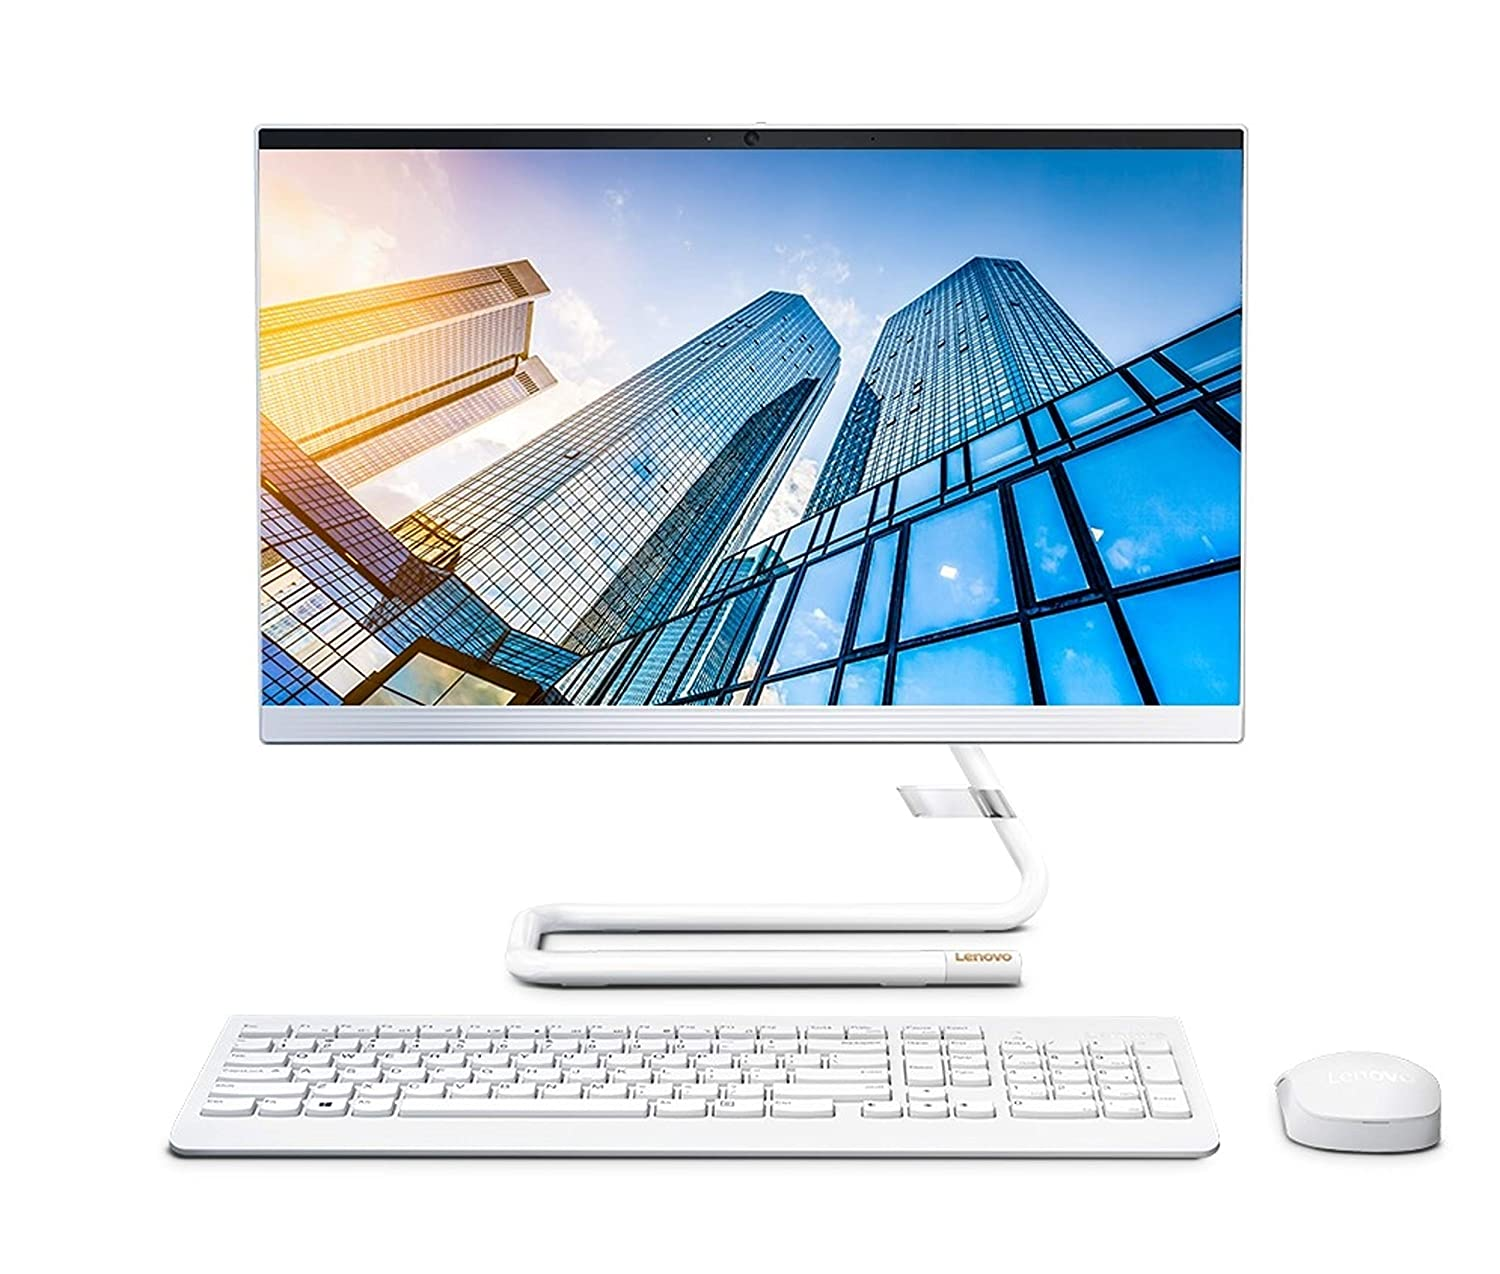 Lenovo IdeaCentre AIO 3 21.5-inch Full HD All in One Desktop (AMD Ryzen 3/8GB/1TB HDD/Windows 10/MS Office 2019/Integrated AMD Radeon Graphics/JBL Speakers), Foggy White (F0EX0082IN)